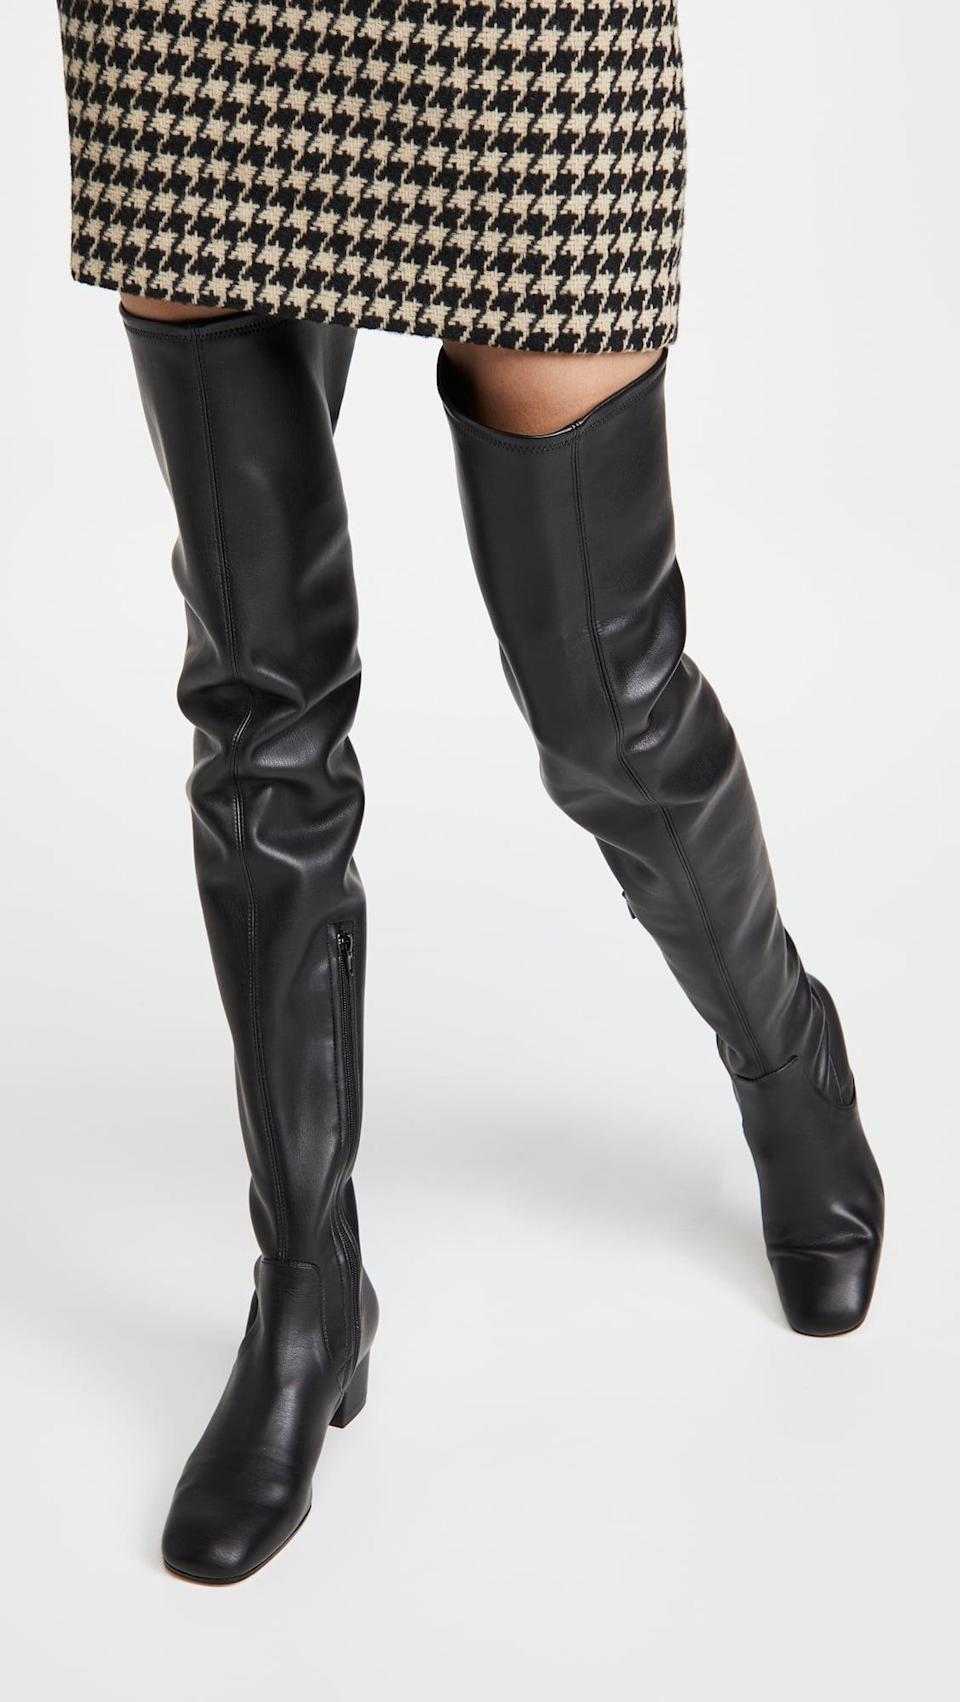 <p>Over the knee boots are coming back in style, and we like these sleek leather <span>Staud Aimee Boots</span> ($495).</p>